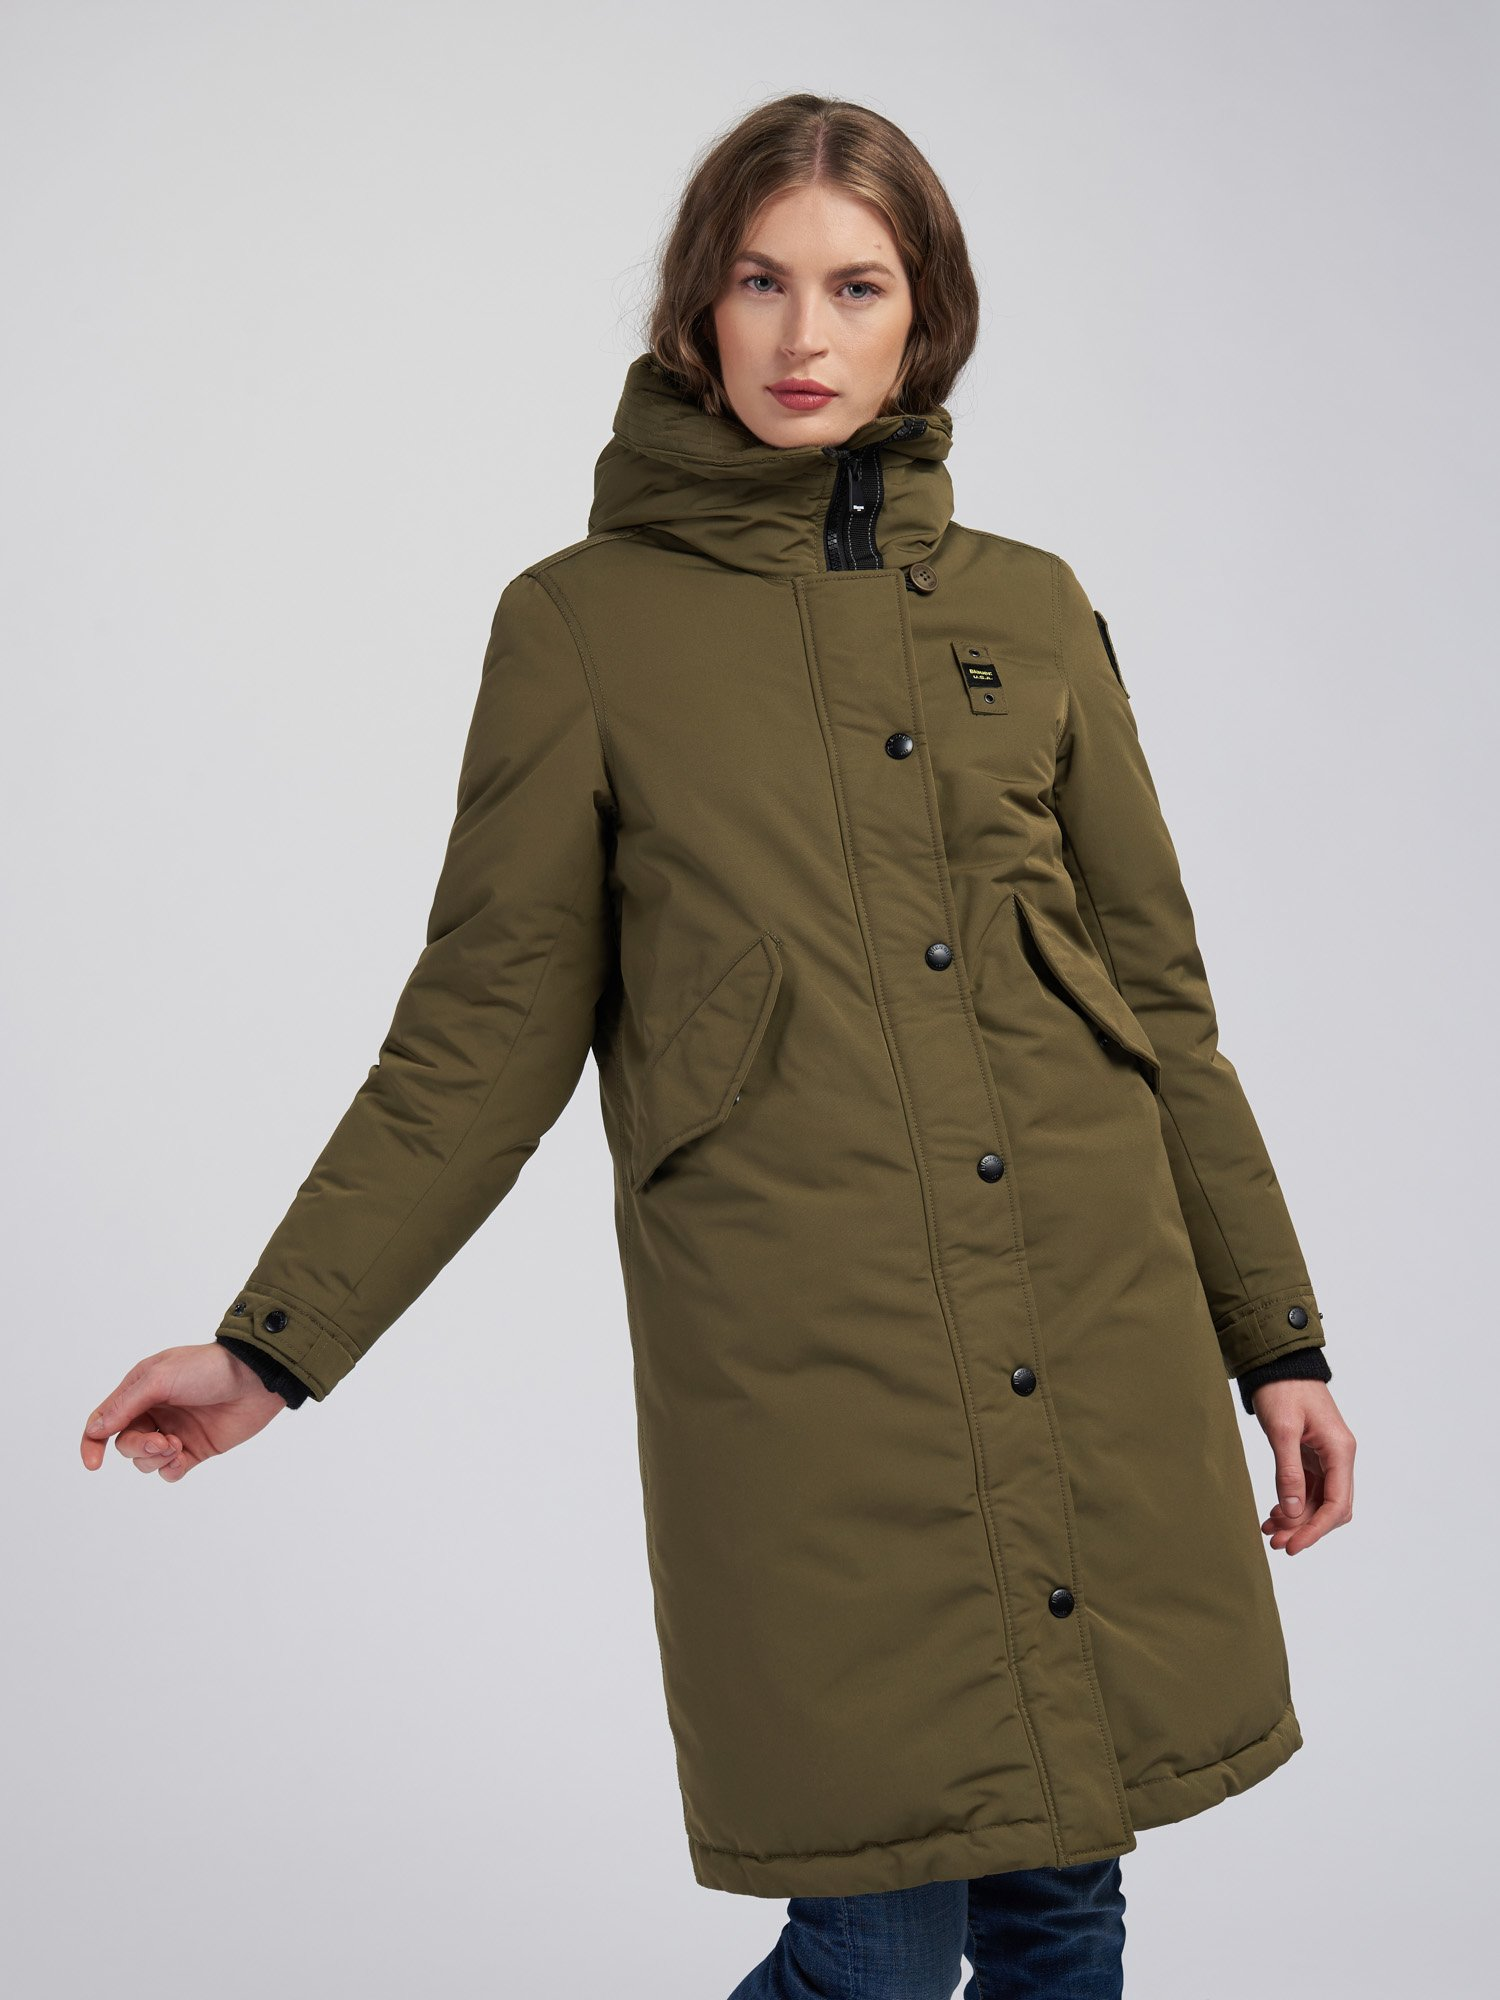 Blauer - JUDITH LONG PARKA IN LIGHT TASLAN - Light Military Green - Blauer